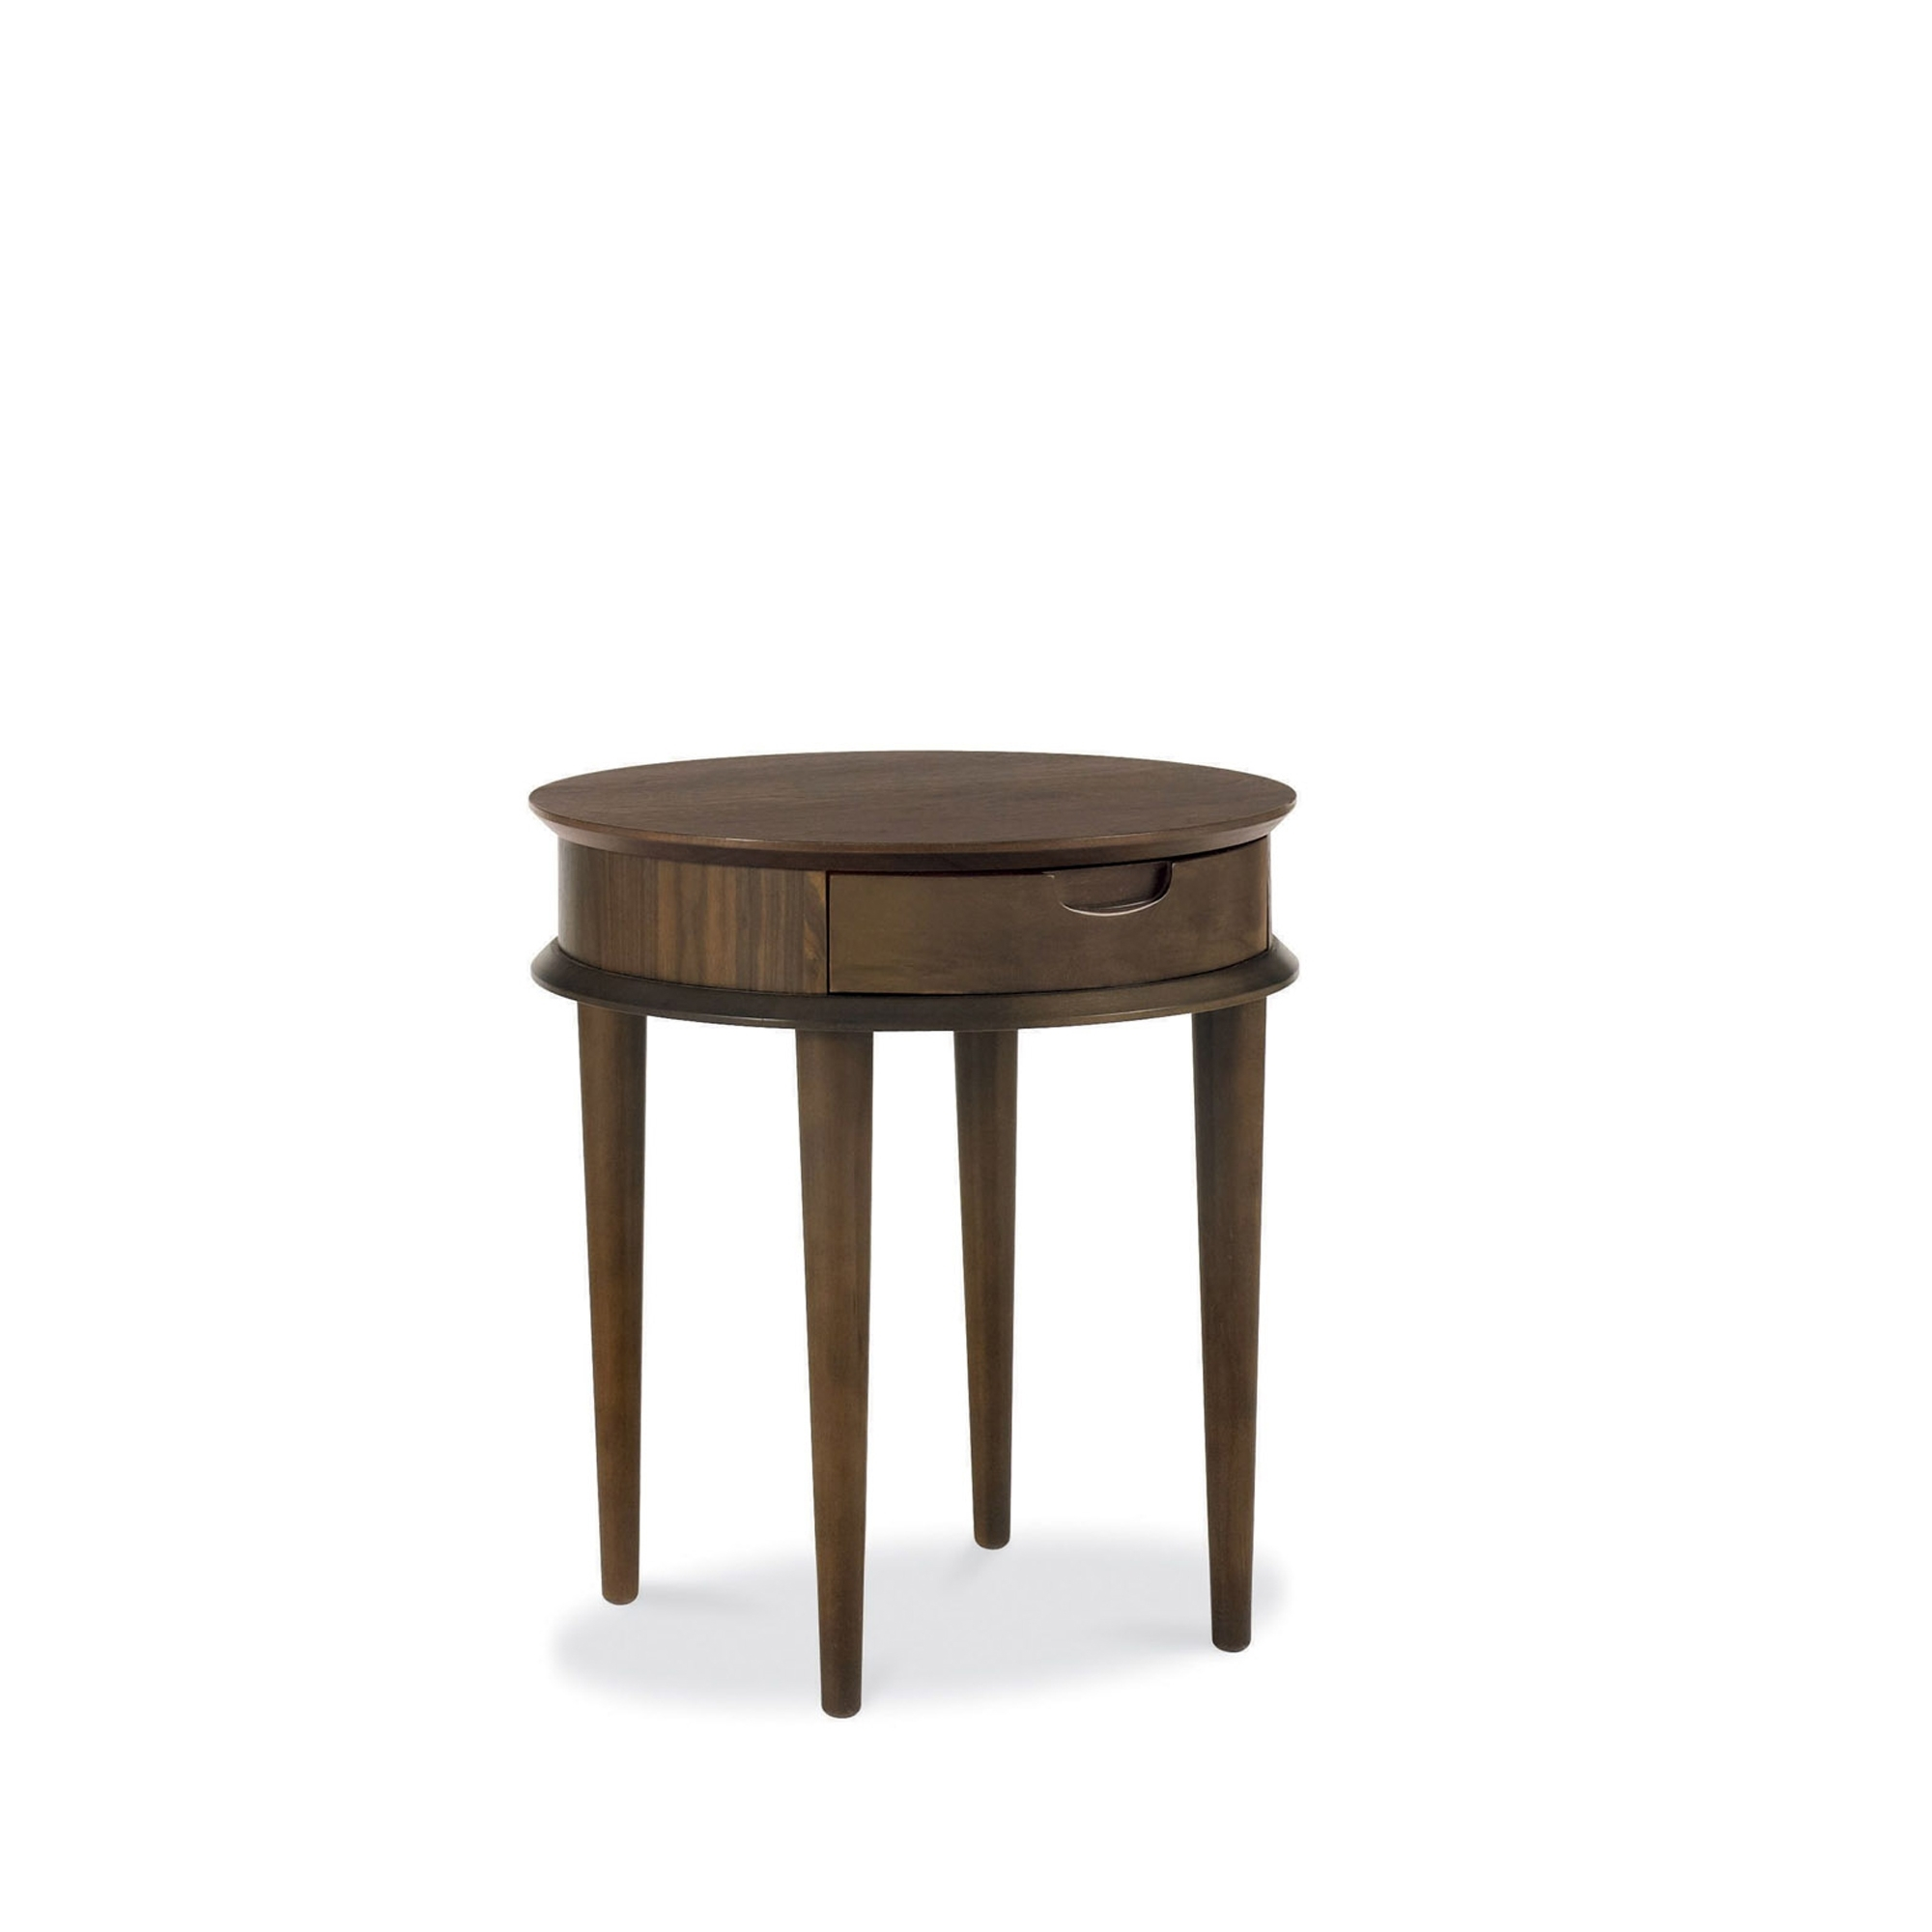 Cookes collection norway walnut lamp table with drawer dining cookes collection norway walnut lamp table with drawer aloadofball Images